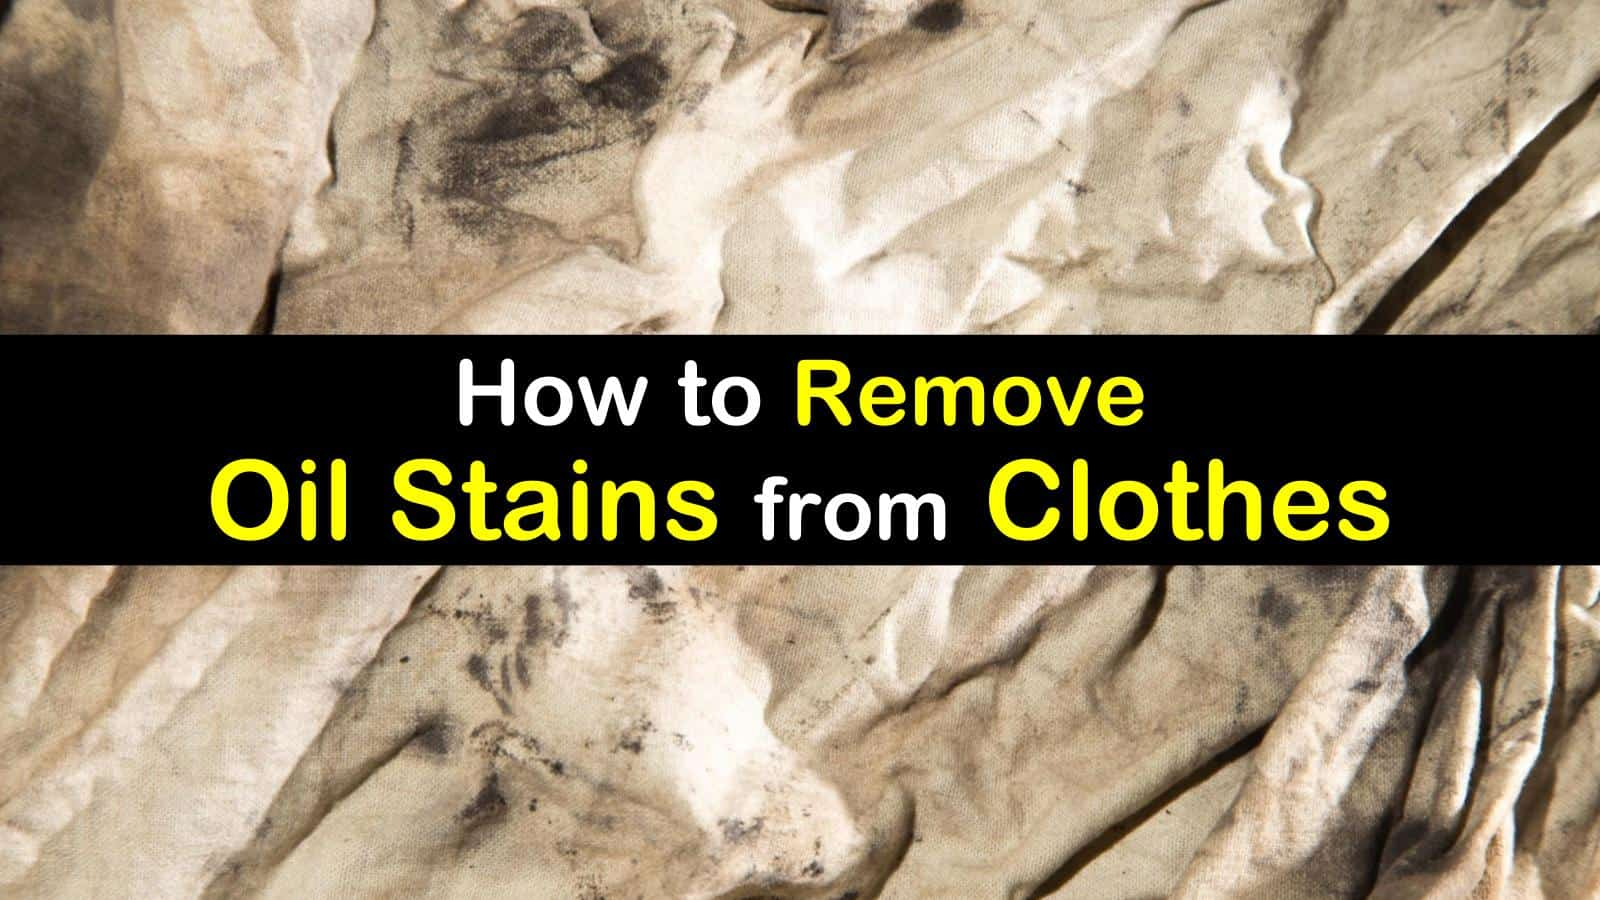 how to remove oil stains from clothes titleimg1